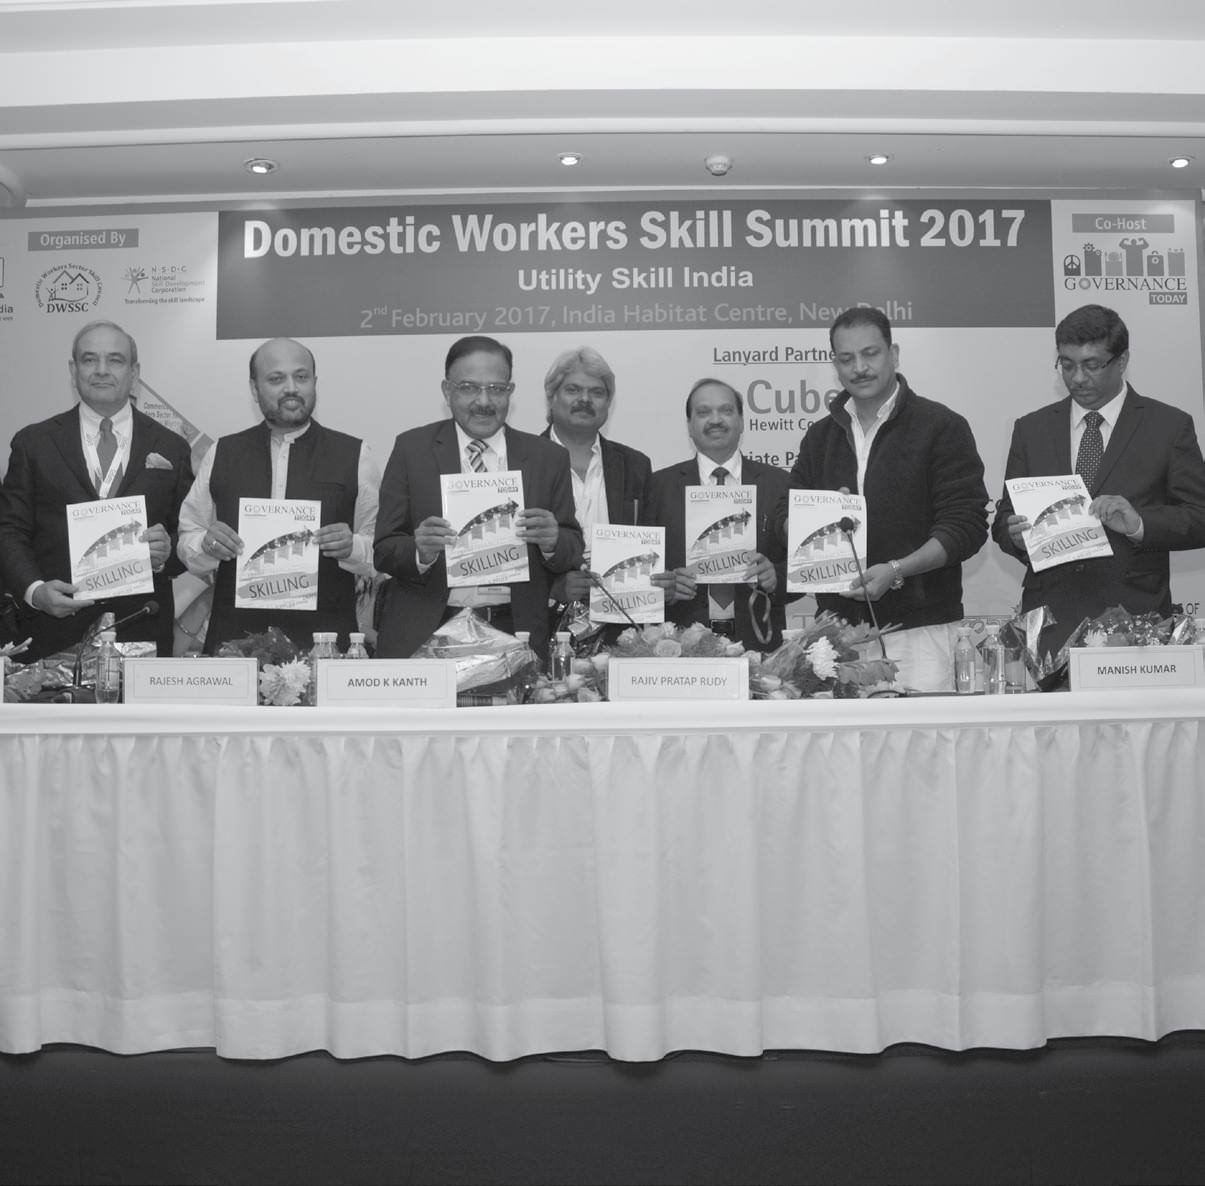 Domestic Workers Skill Summit 2017